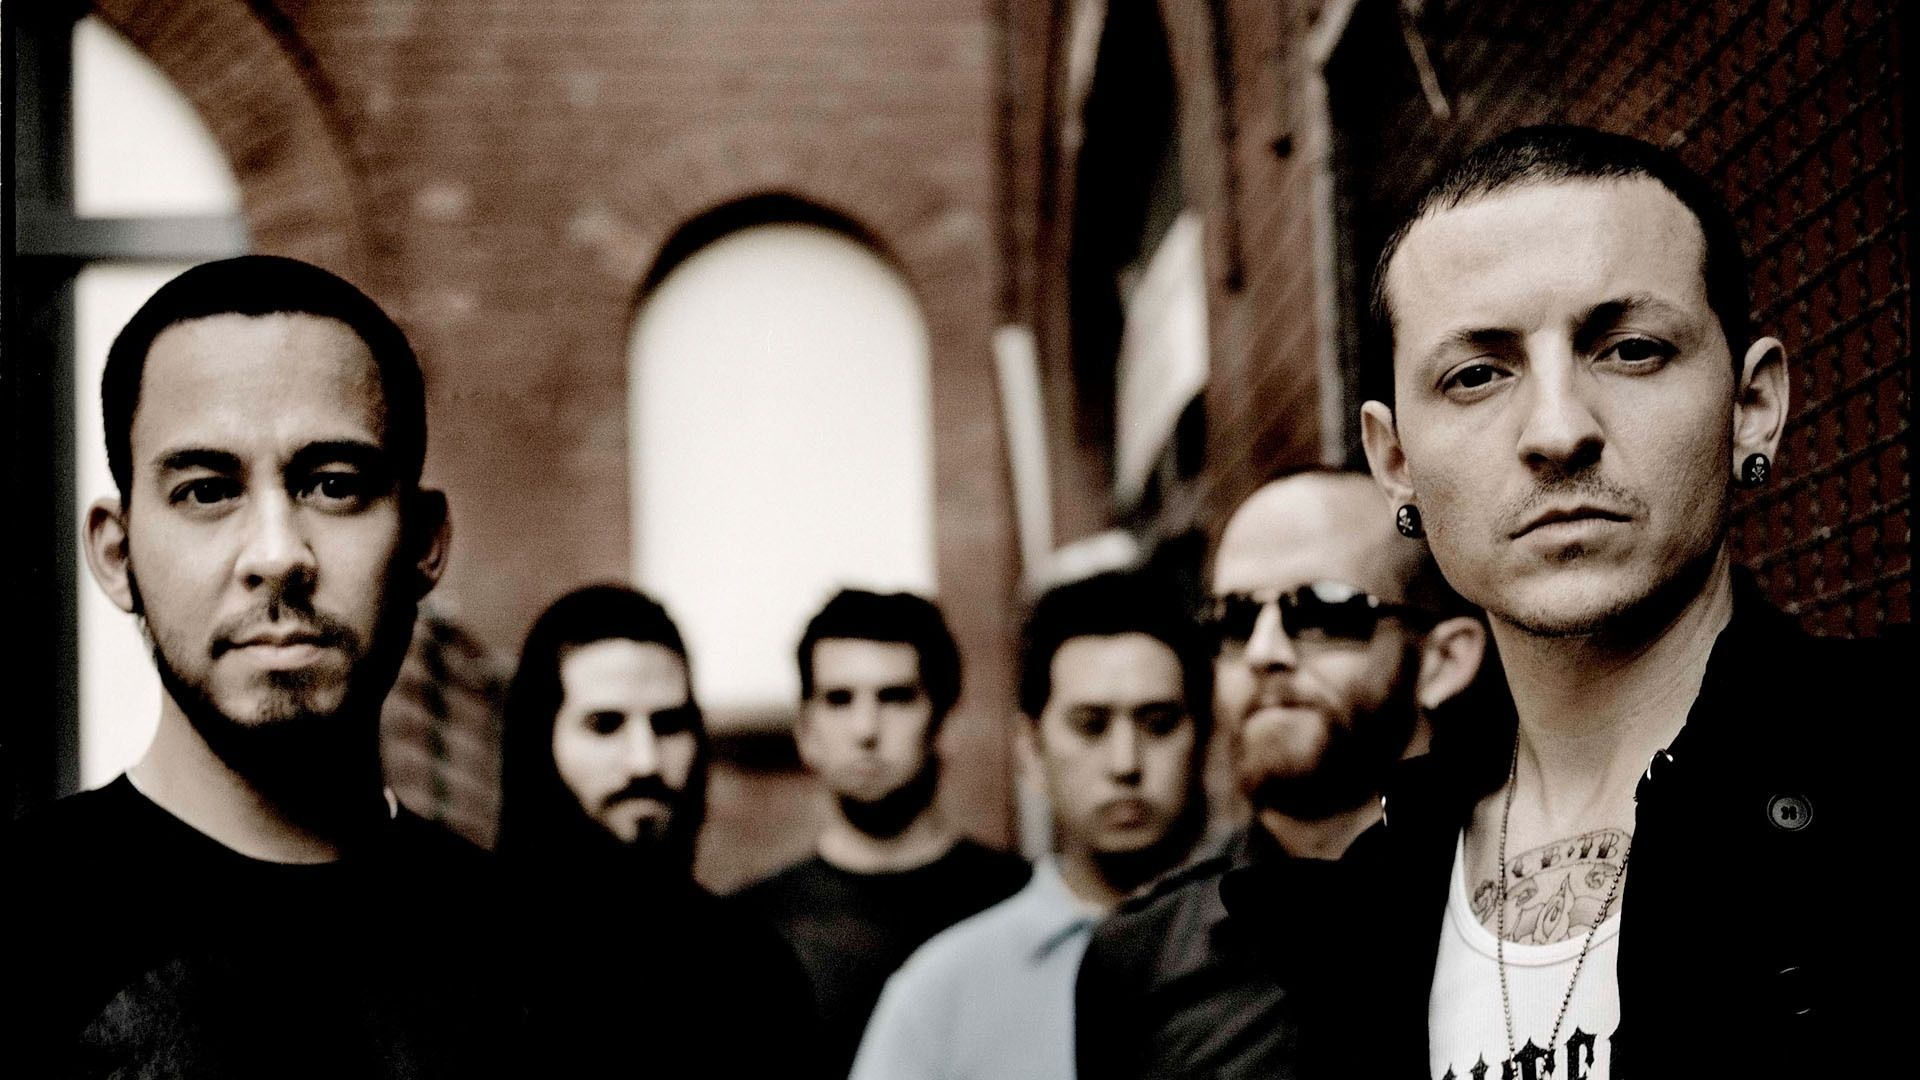 Fans will compose songs for Linkin Park 11.08.2010 38